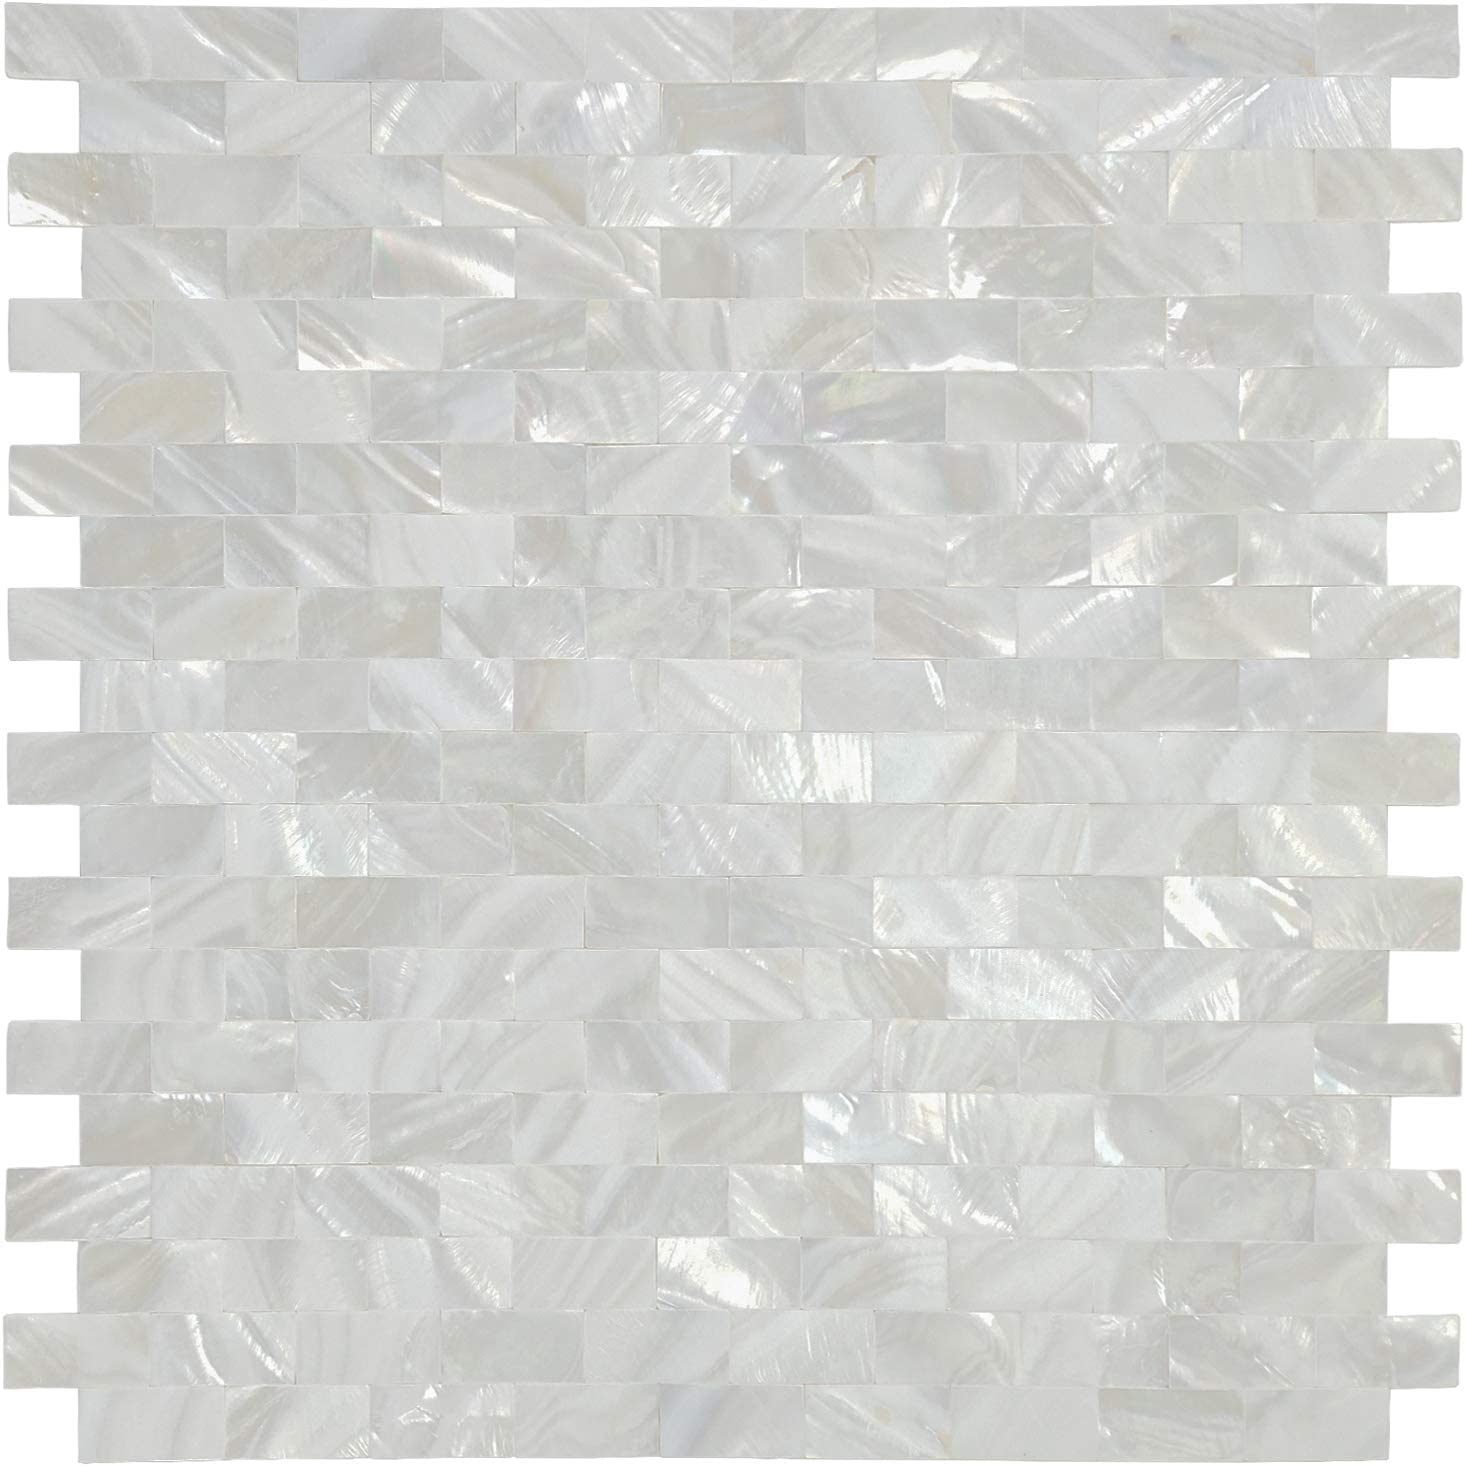 Art3d Mother of Pearl Shell Backsplash Mosaic Kitchen Charlotte Mall for Tile Courier shipping free